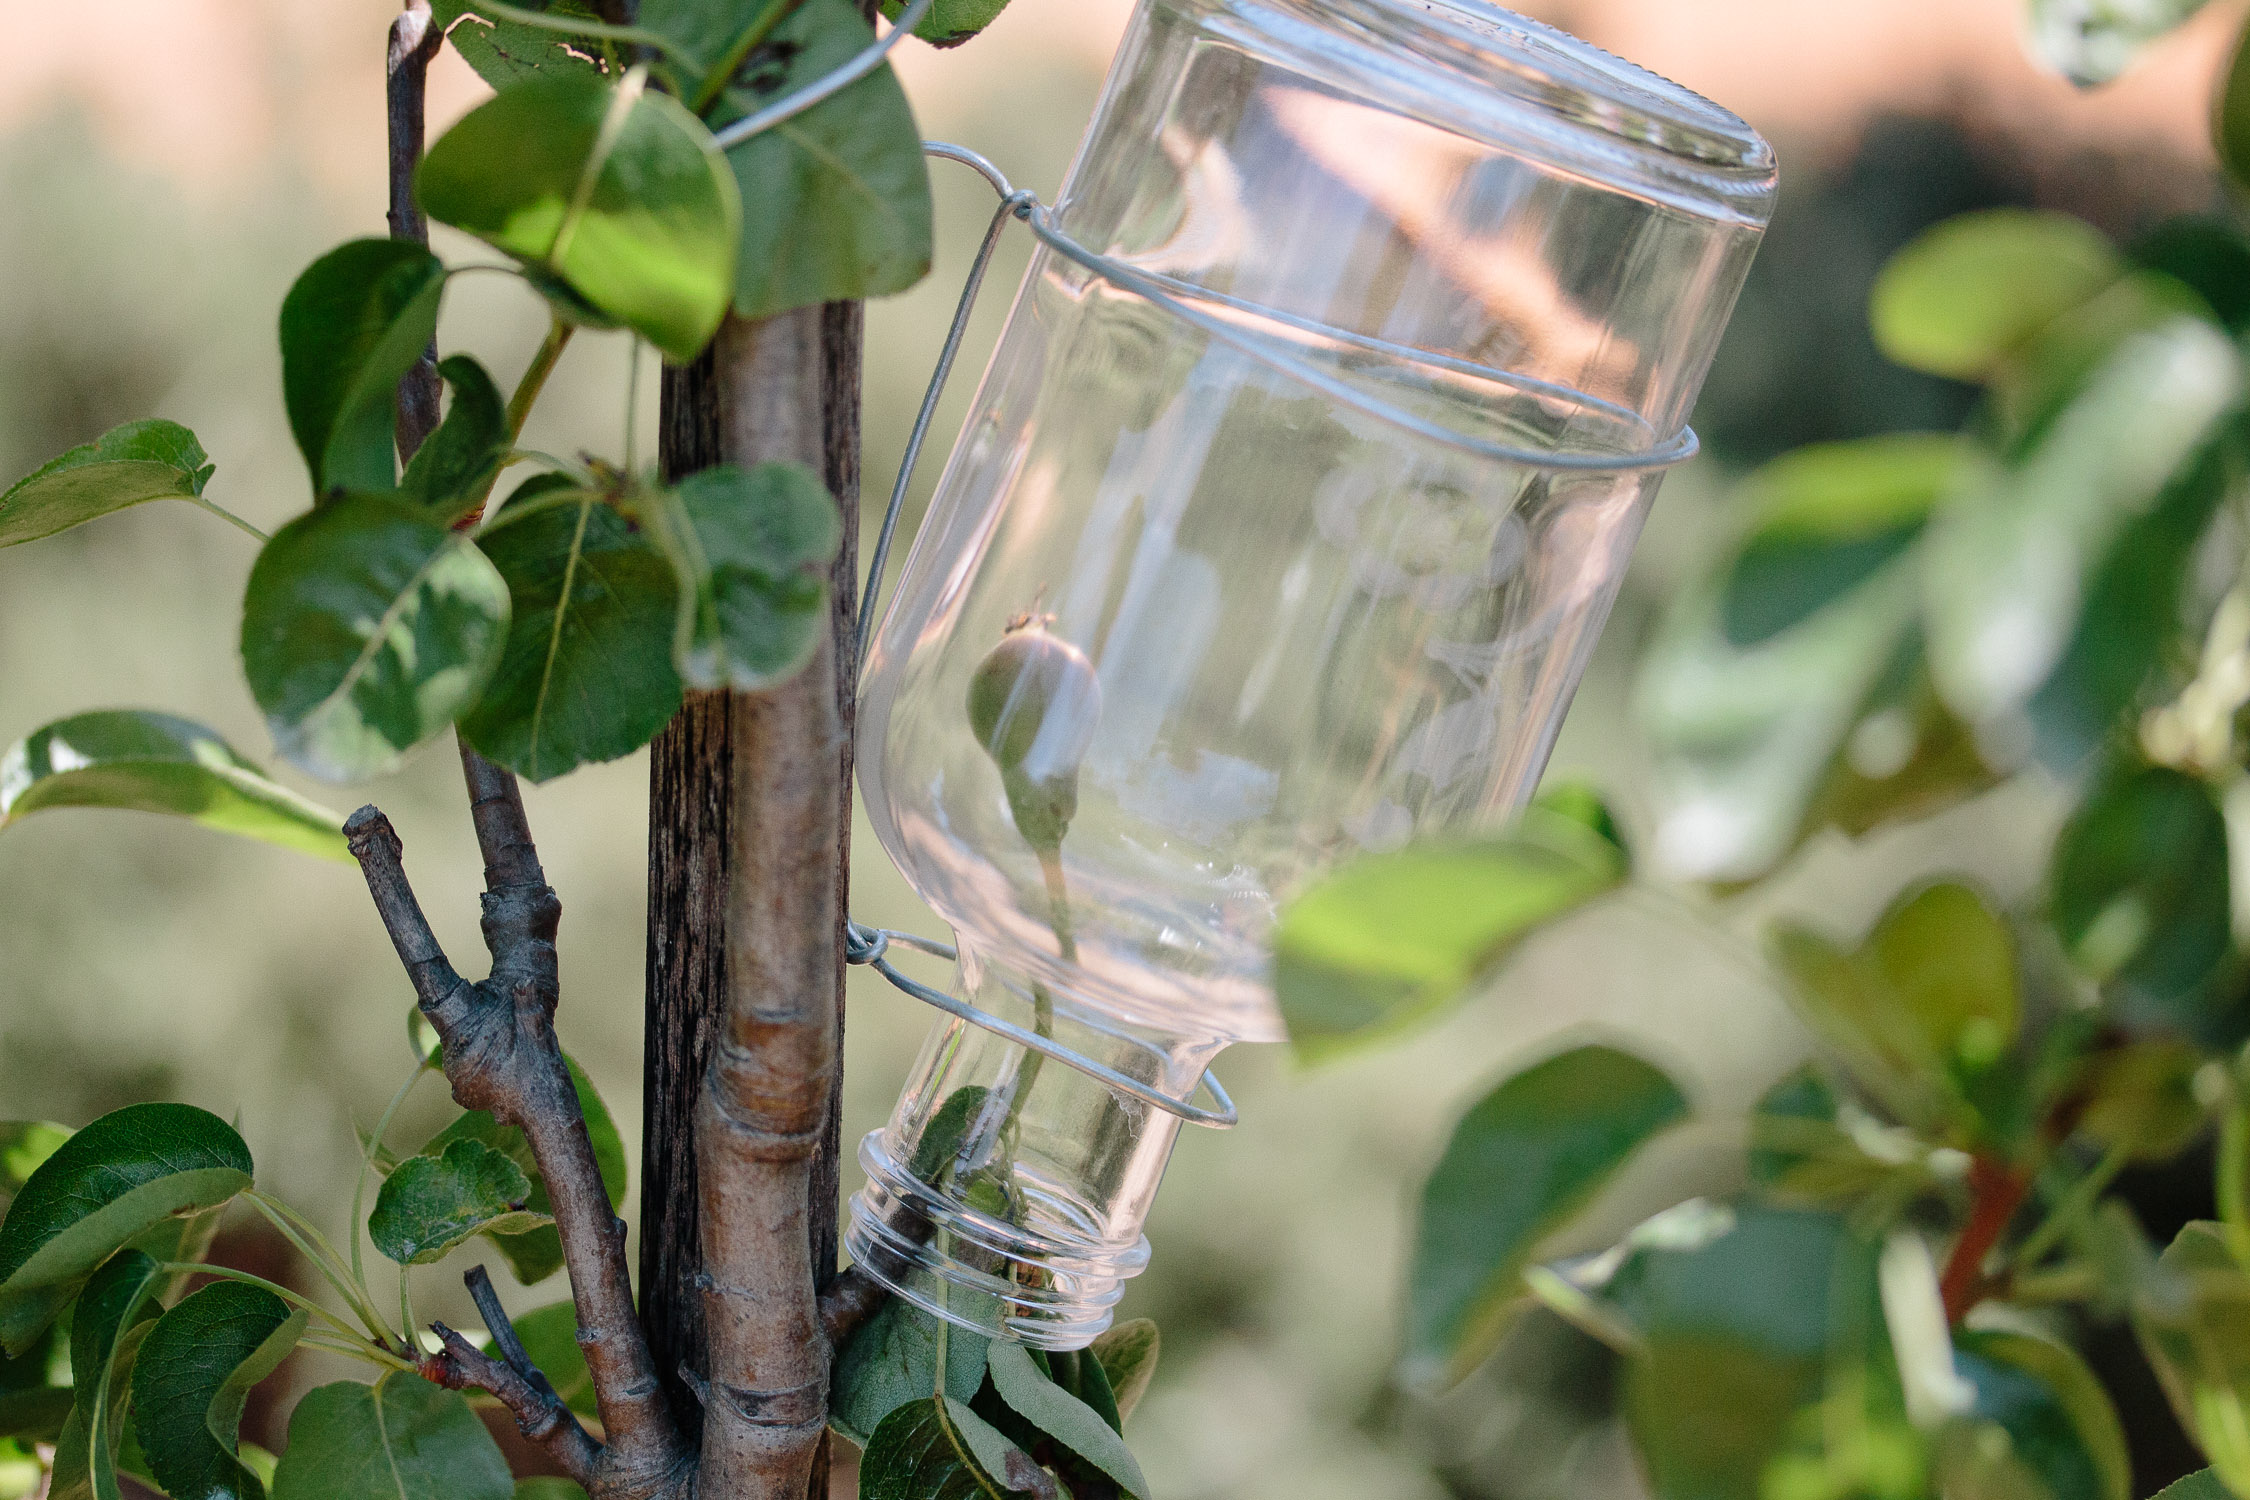 Growing Pears in a Bottle